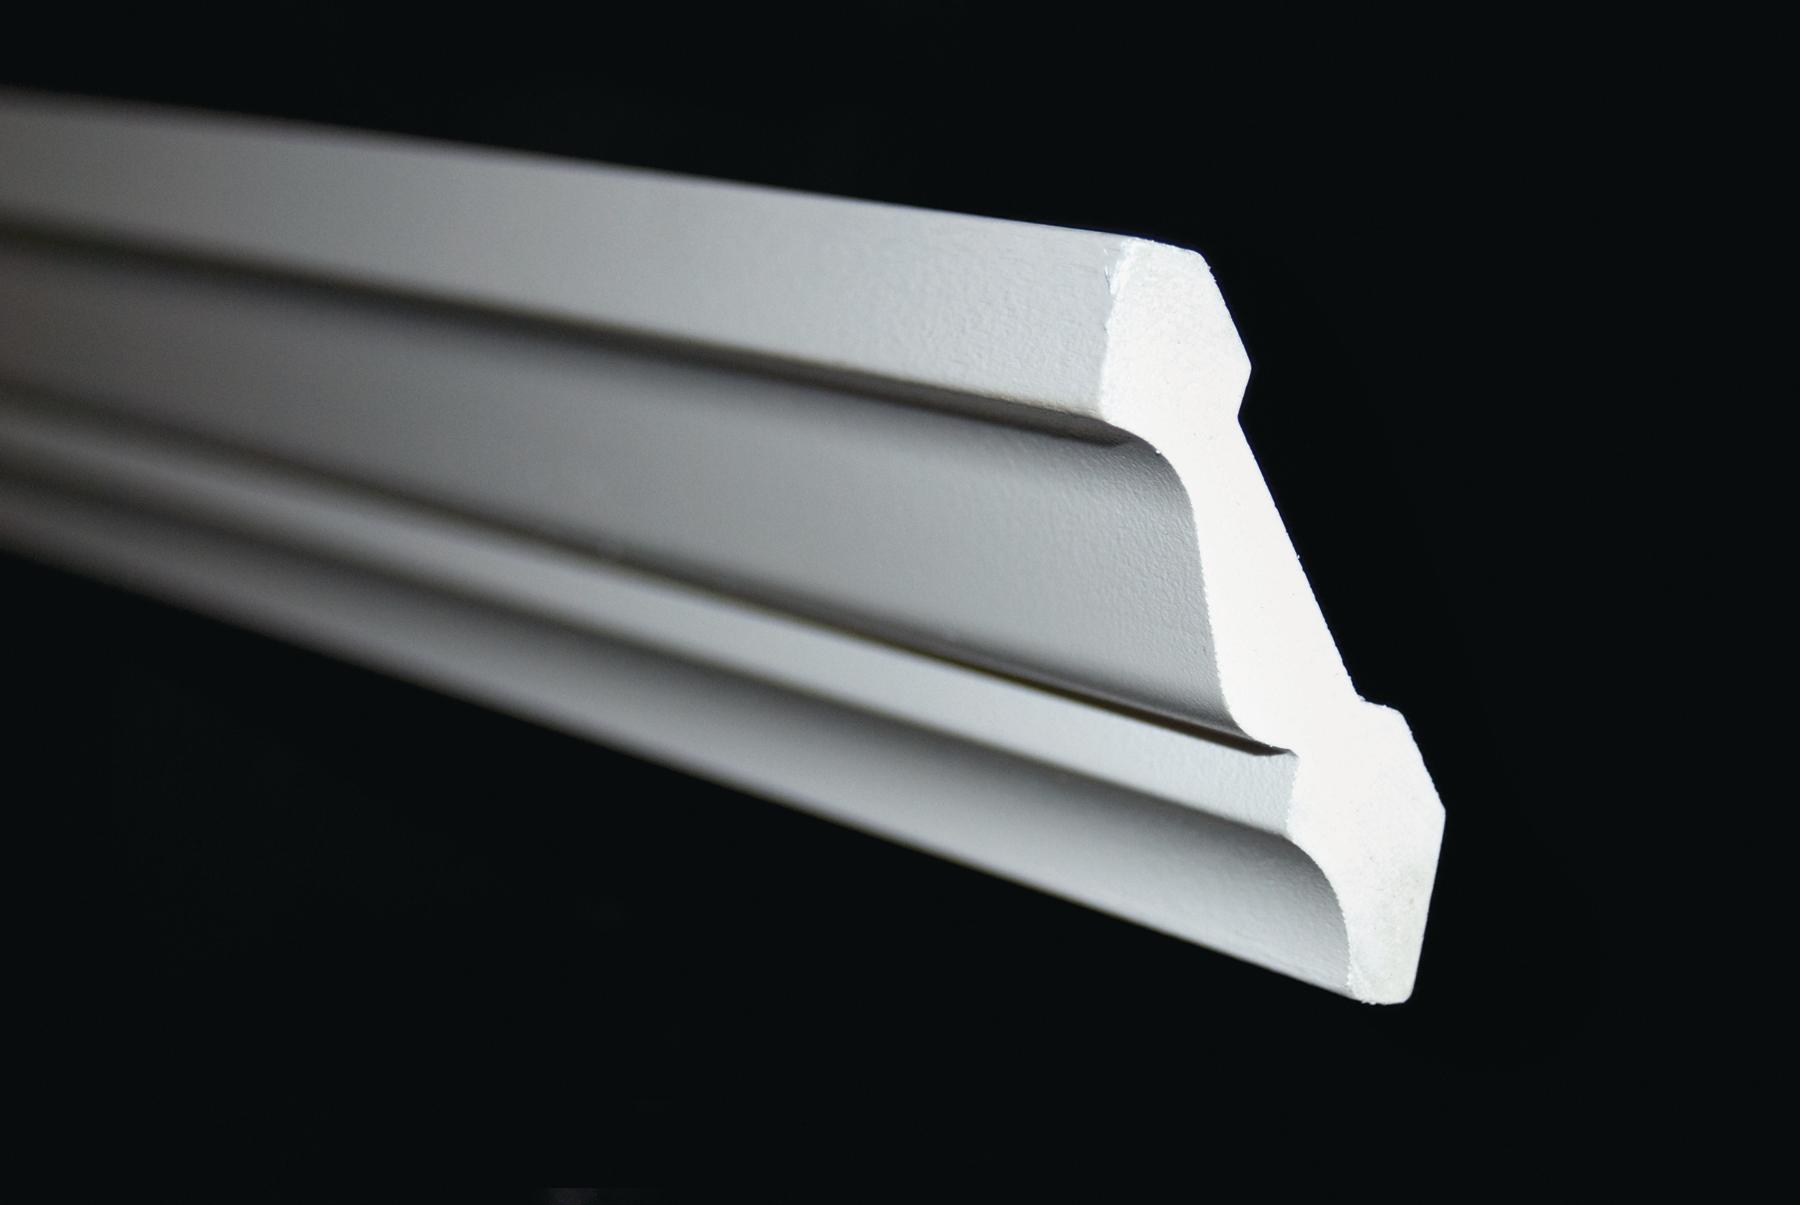 Azek building products 3 inch crown and 1 1 2 inch square for 9 inch crown molding